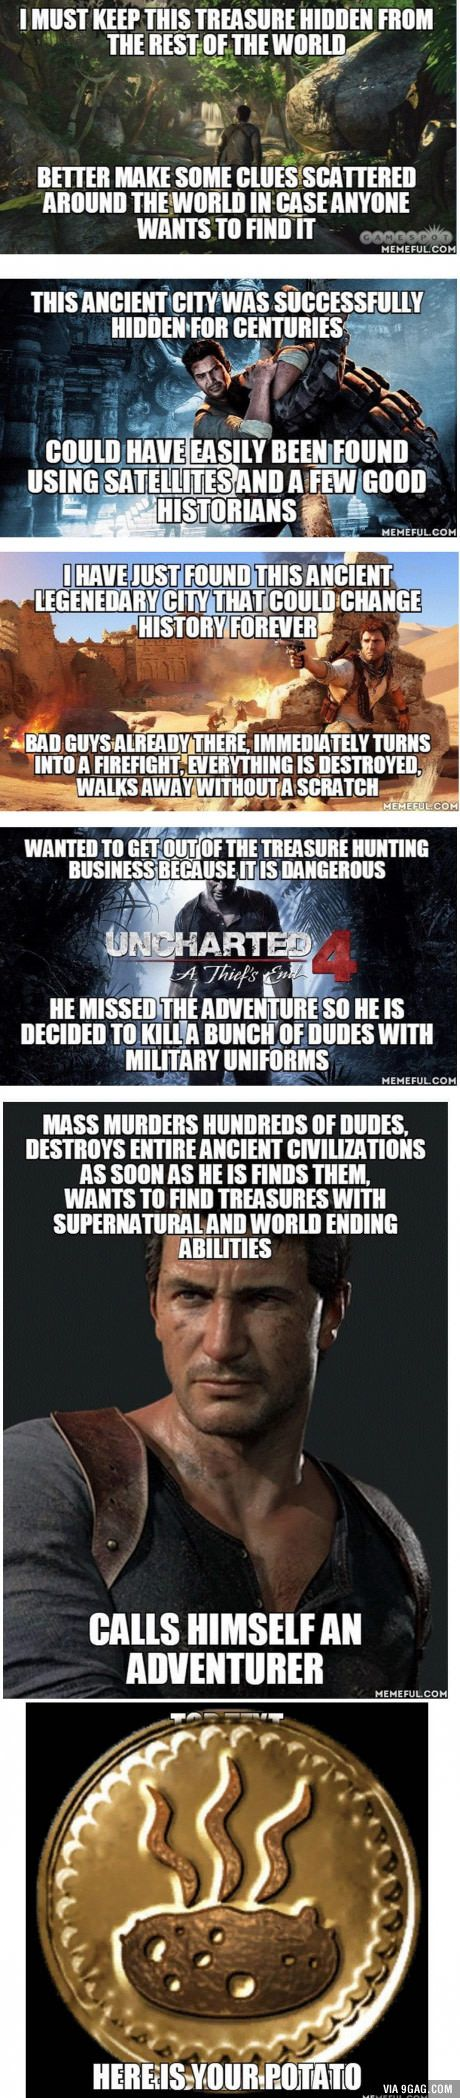 (*** http://BubbleCraze.org - You'll never put this Android/iPhone game down! ***)  Uncharted series logic (Still in love with the series)